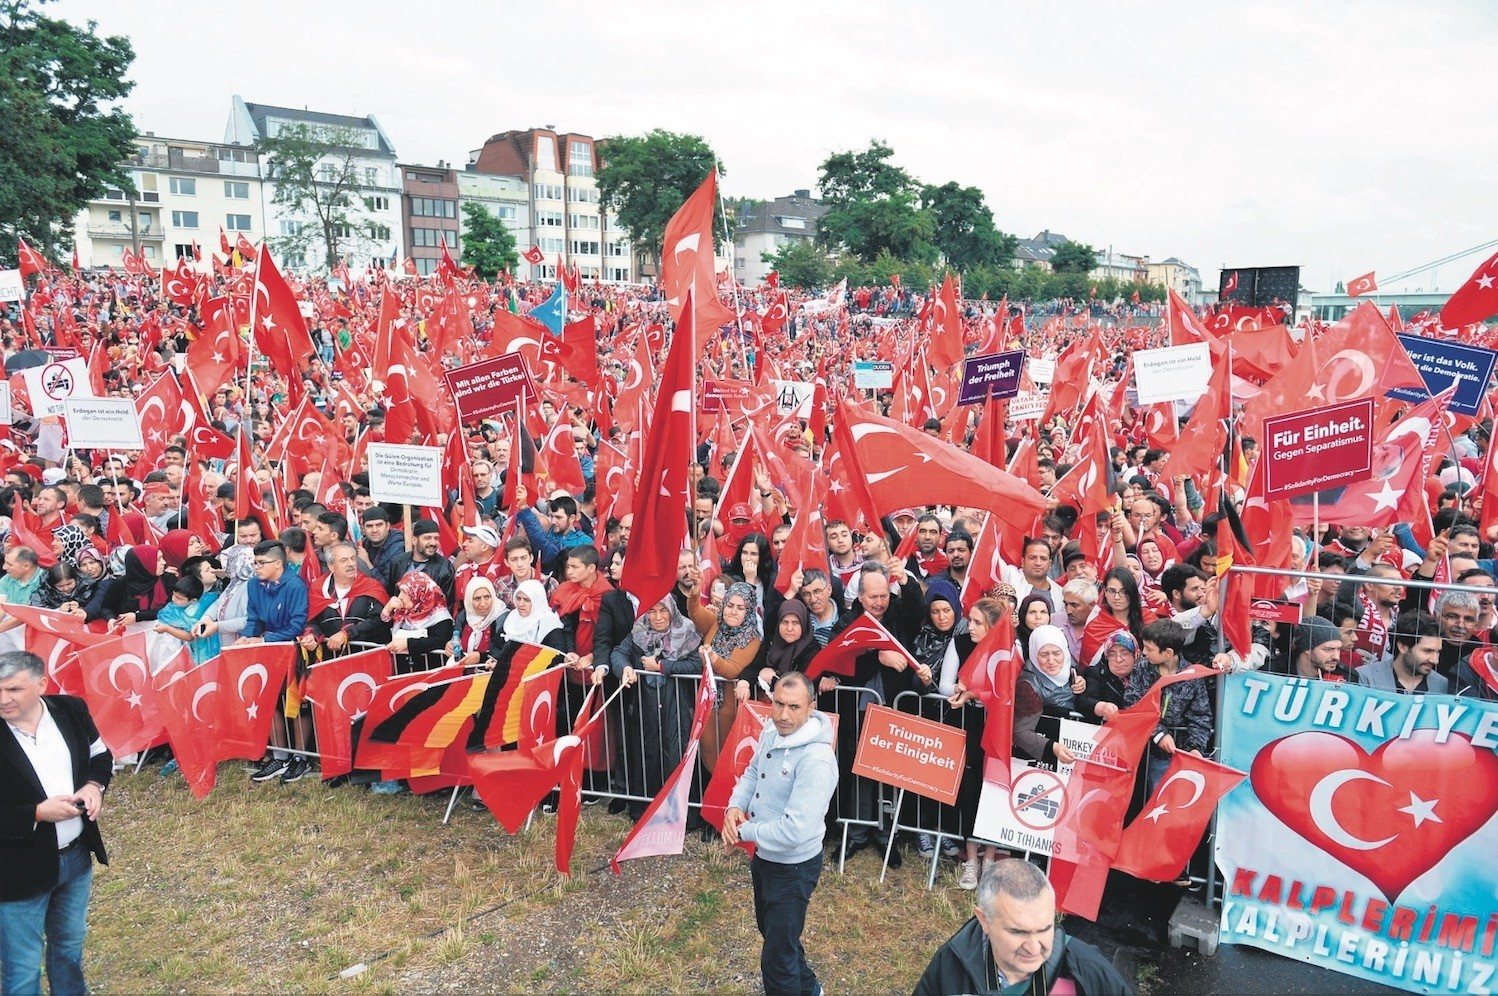 Turks attend a democracy rally in Germanyu2019s Cologne in August 2016 to protest the coup attempt by FETu00d6. Hundreds of FETu00d6 members sought asylum in Germany after the attempt.